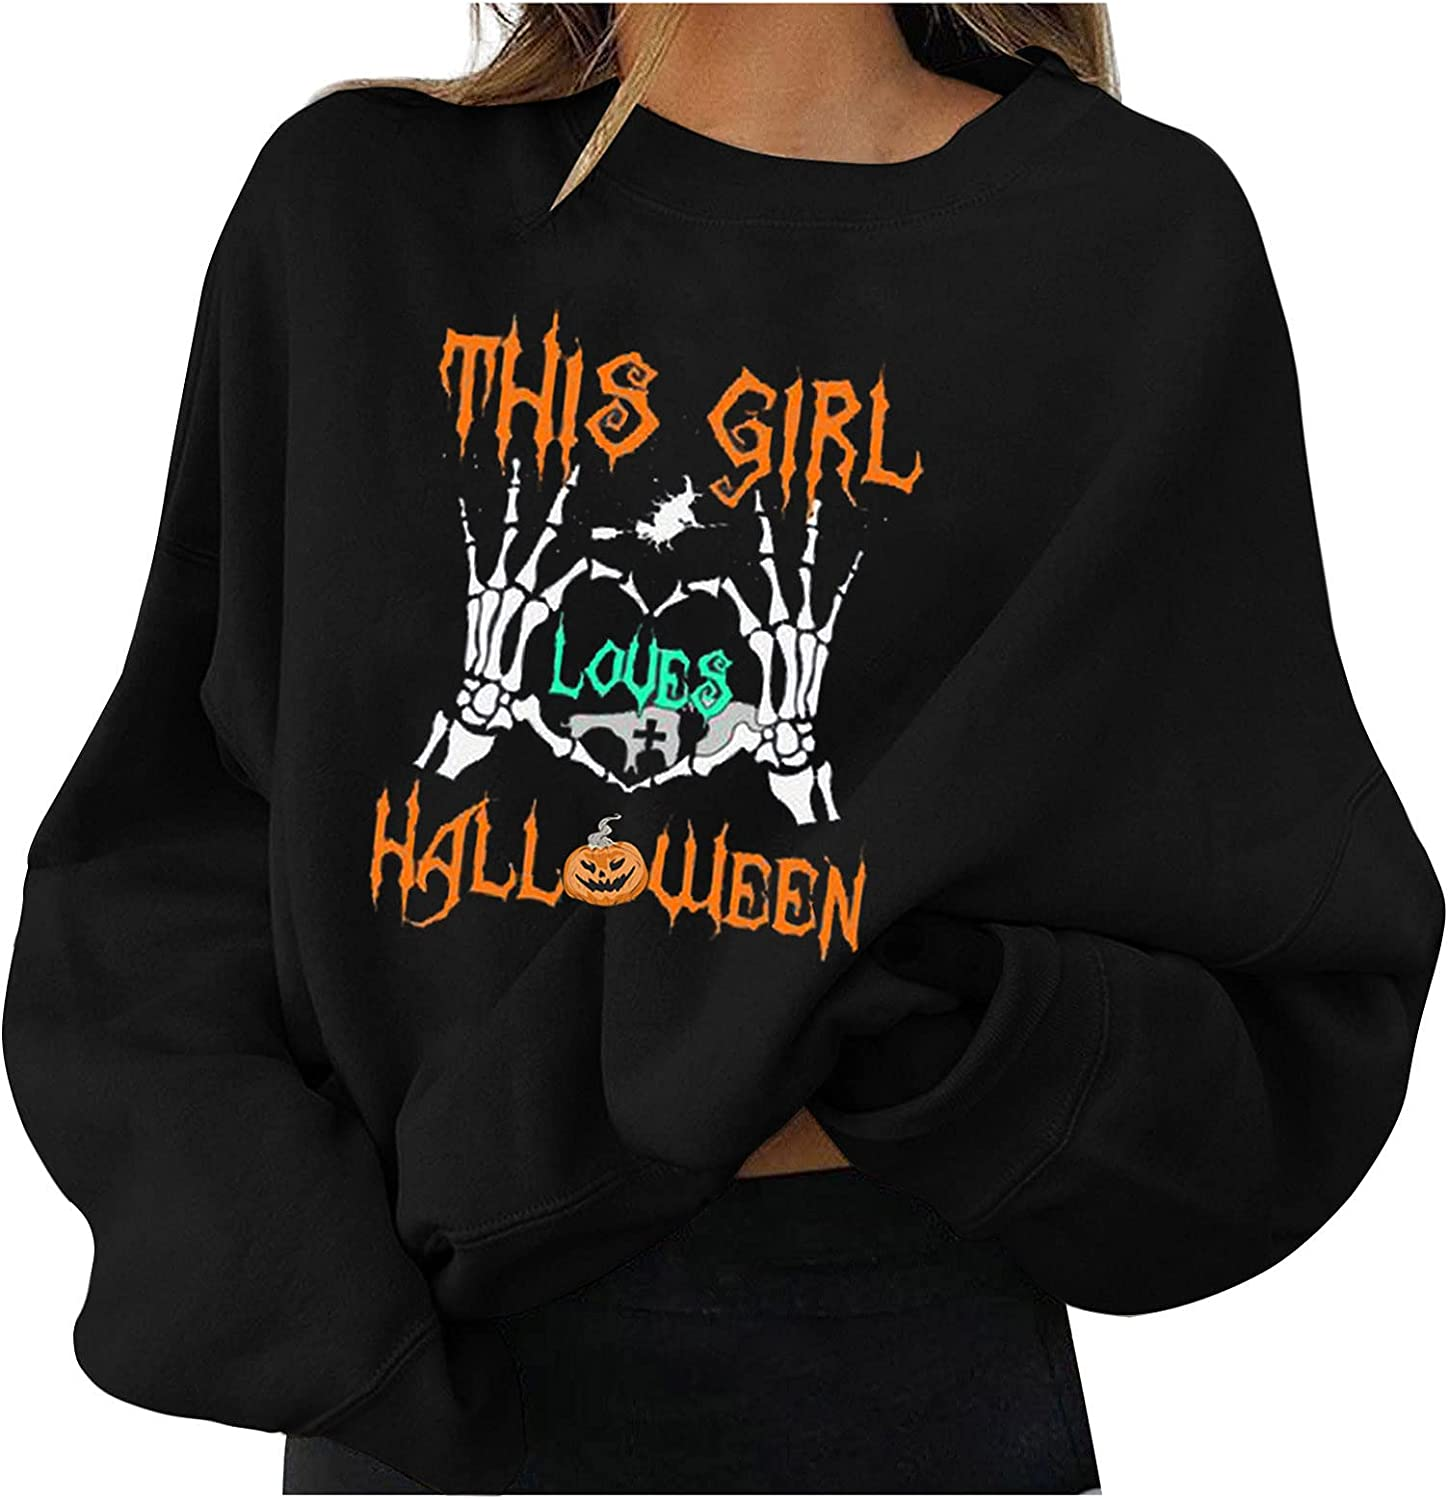 Jaqqra Halloween Sweatshirt for Women, Womens Long Sleeve Tops Skull Letter Print Casual Loose Pullover Shirts Blouse